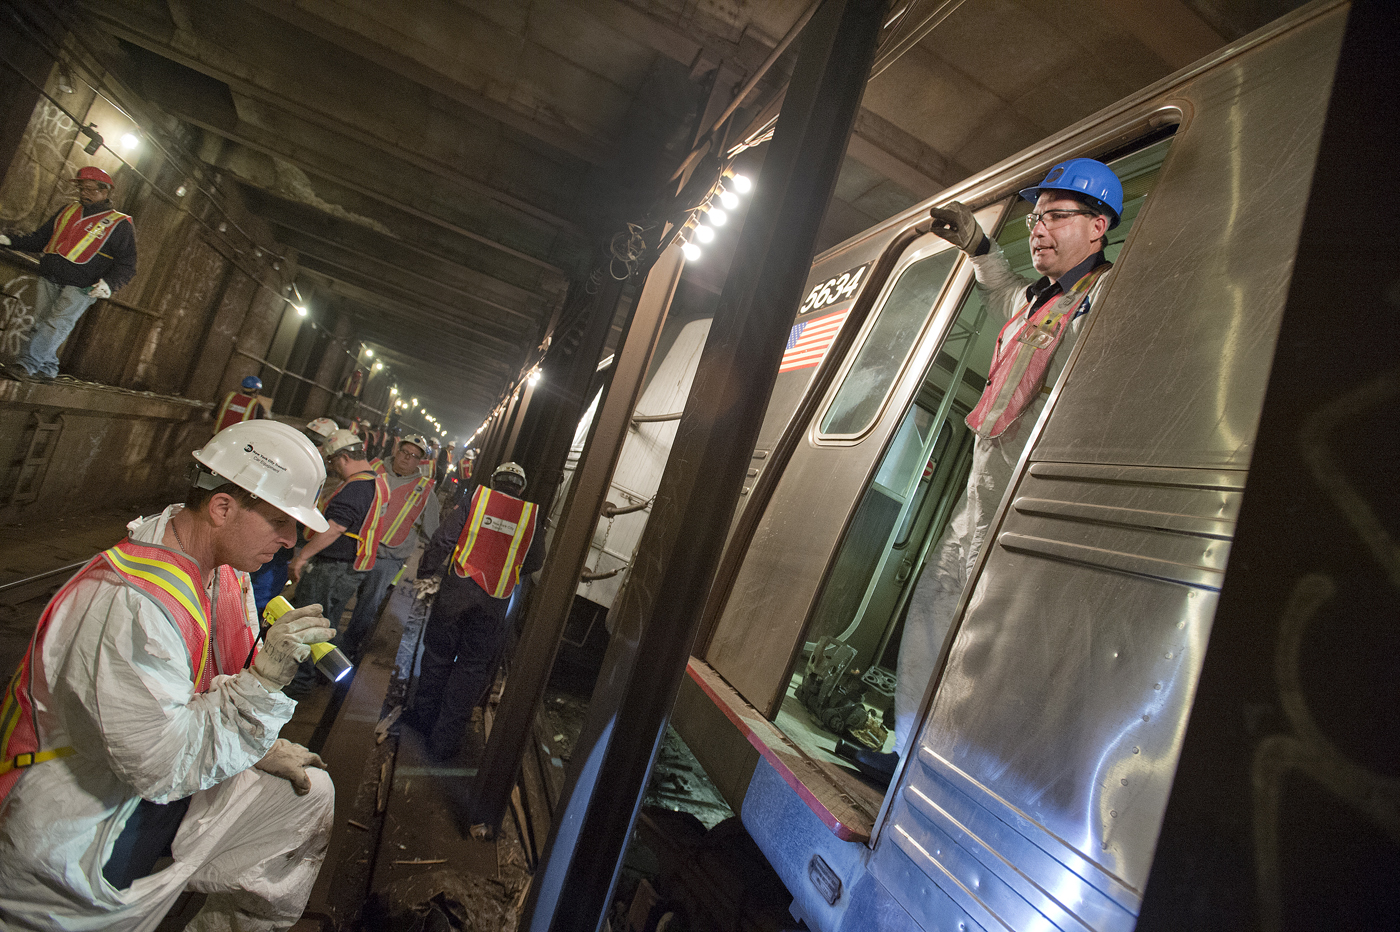 F Train Derails in Woodside, City Vows 'Thorough